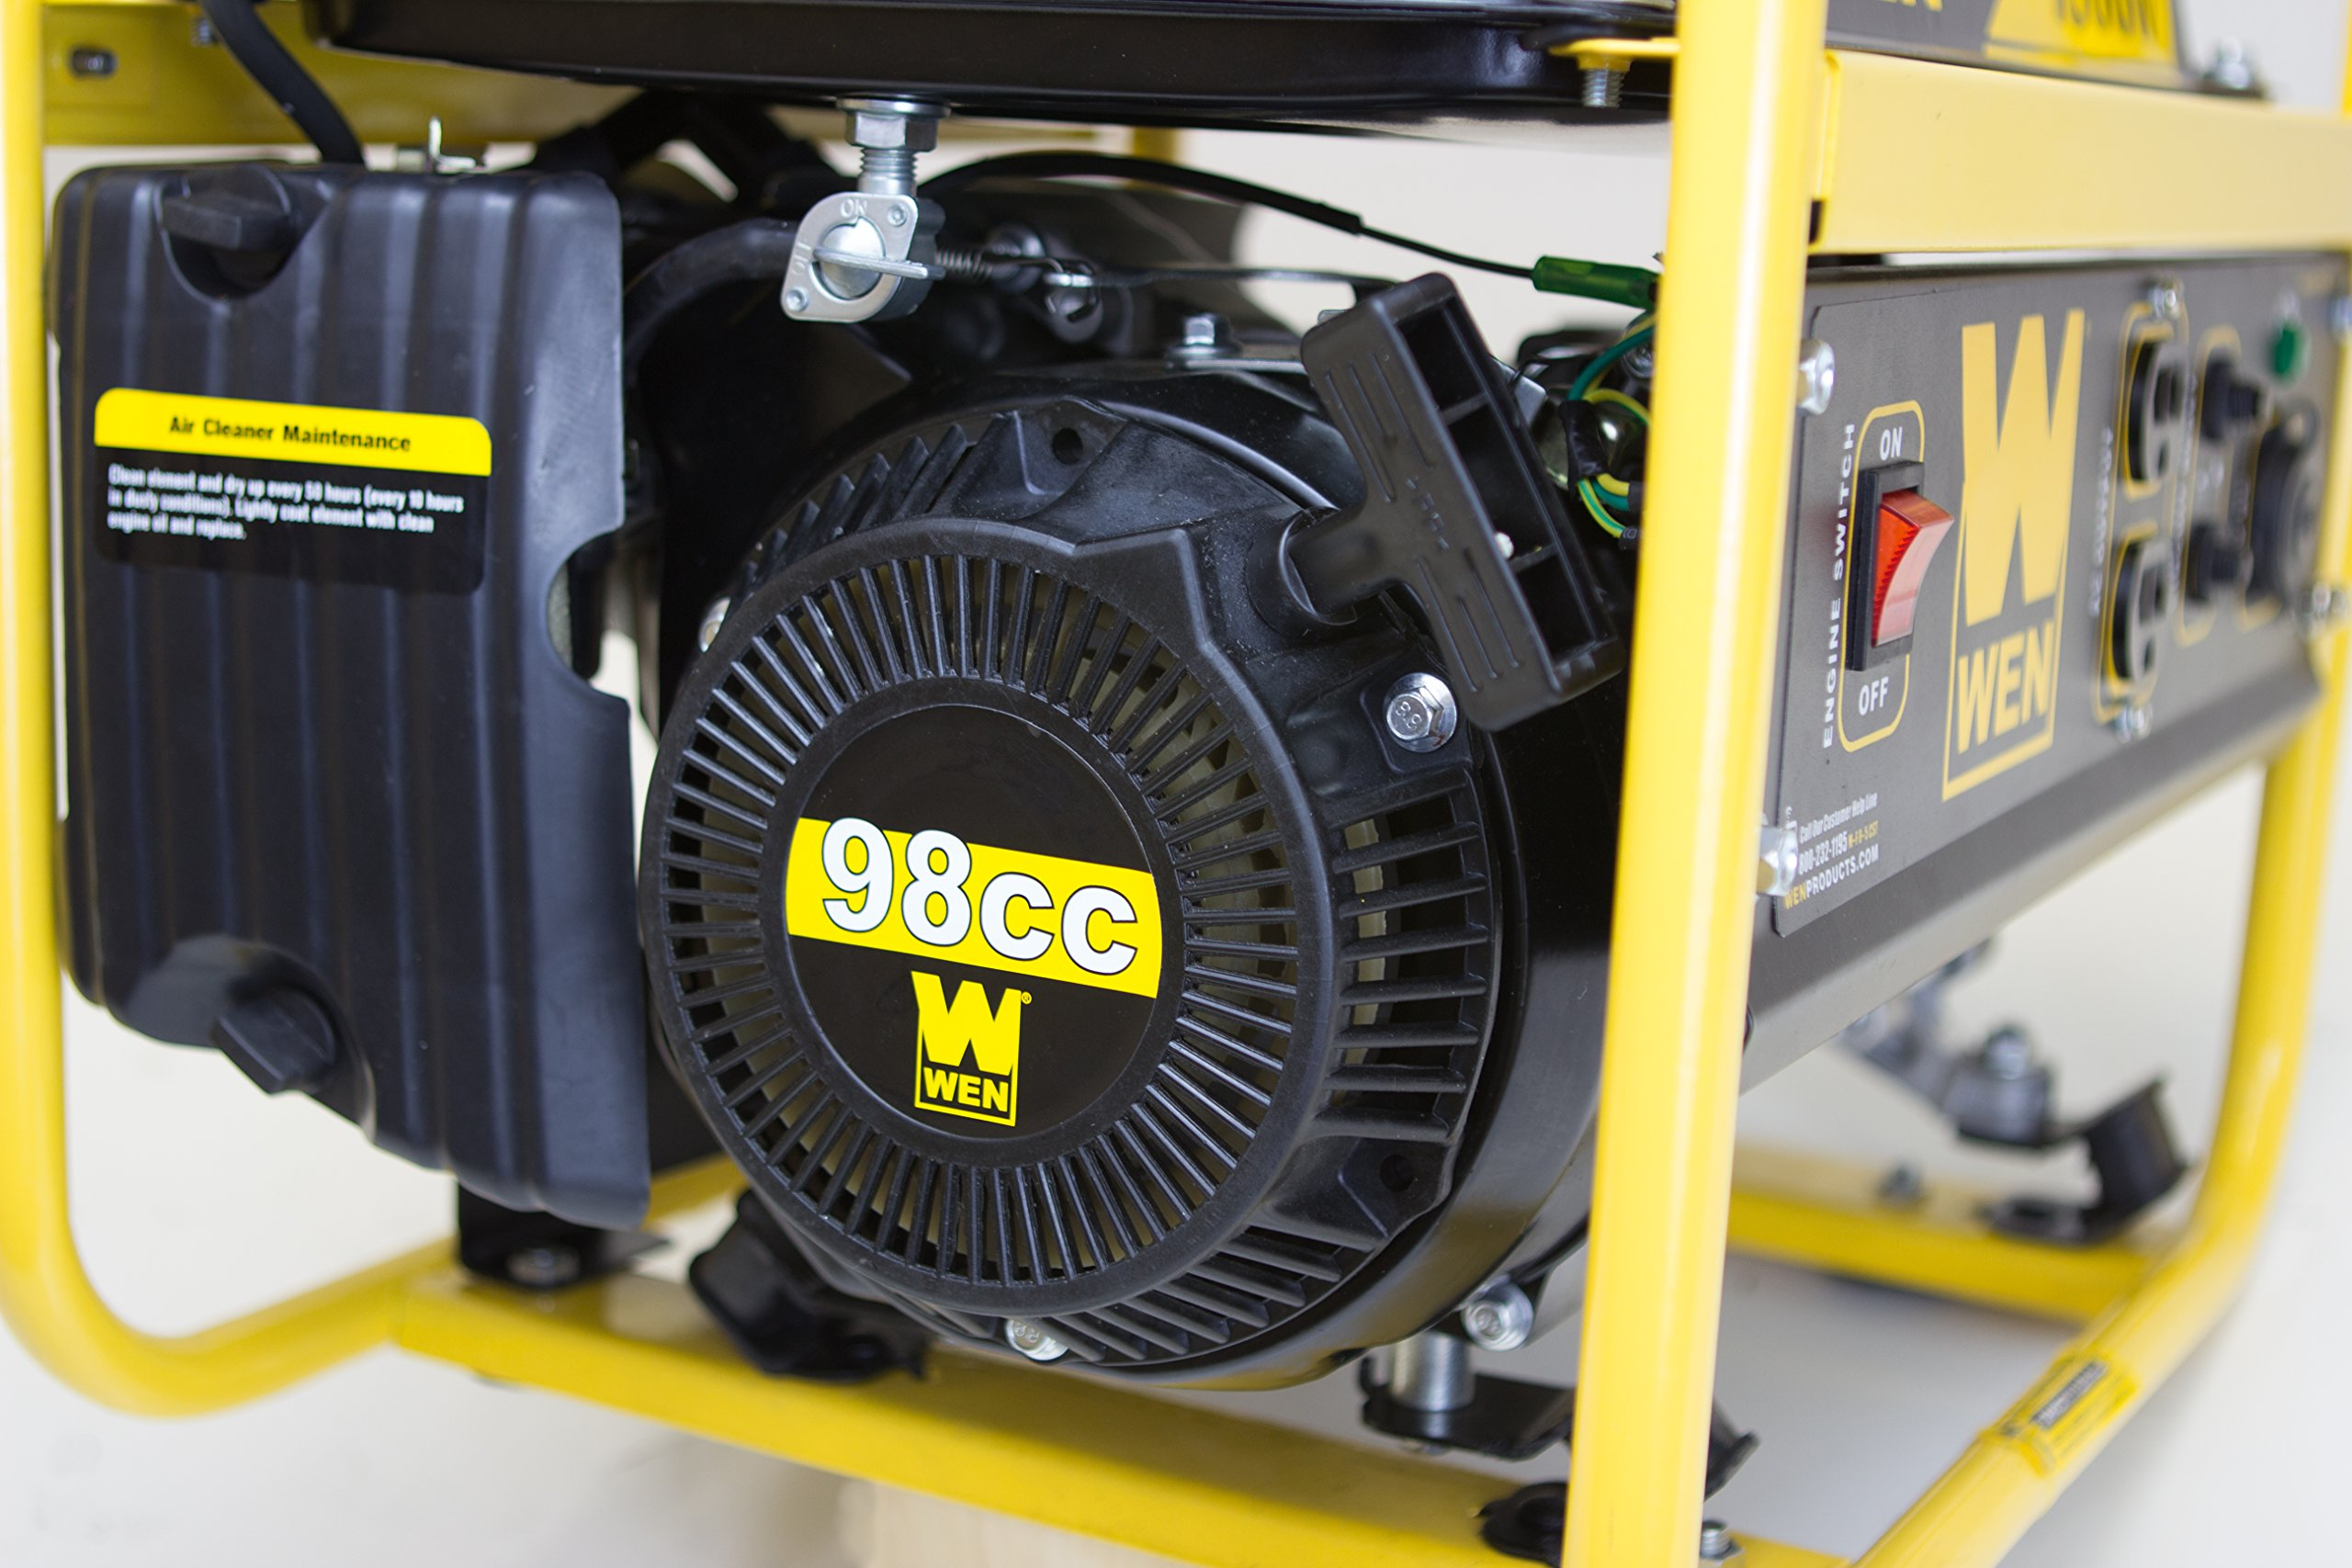 WEN 56180, 1500 Running Watts/1800 Starting Watts, Gas Powered Portable Generator, CARB Compliant by WEN (Image #3)